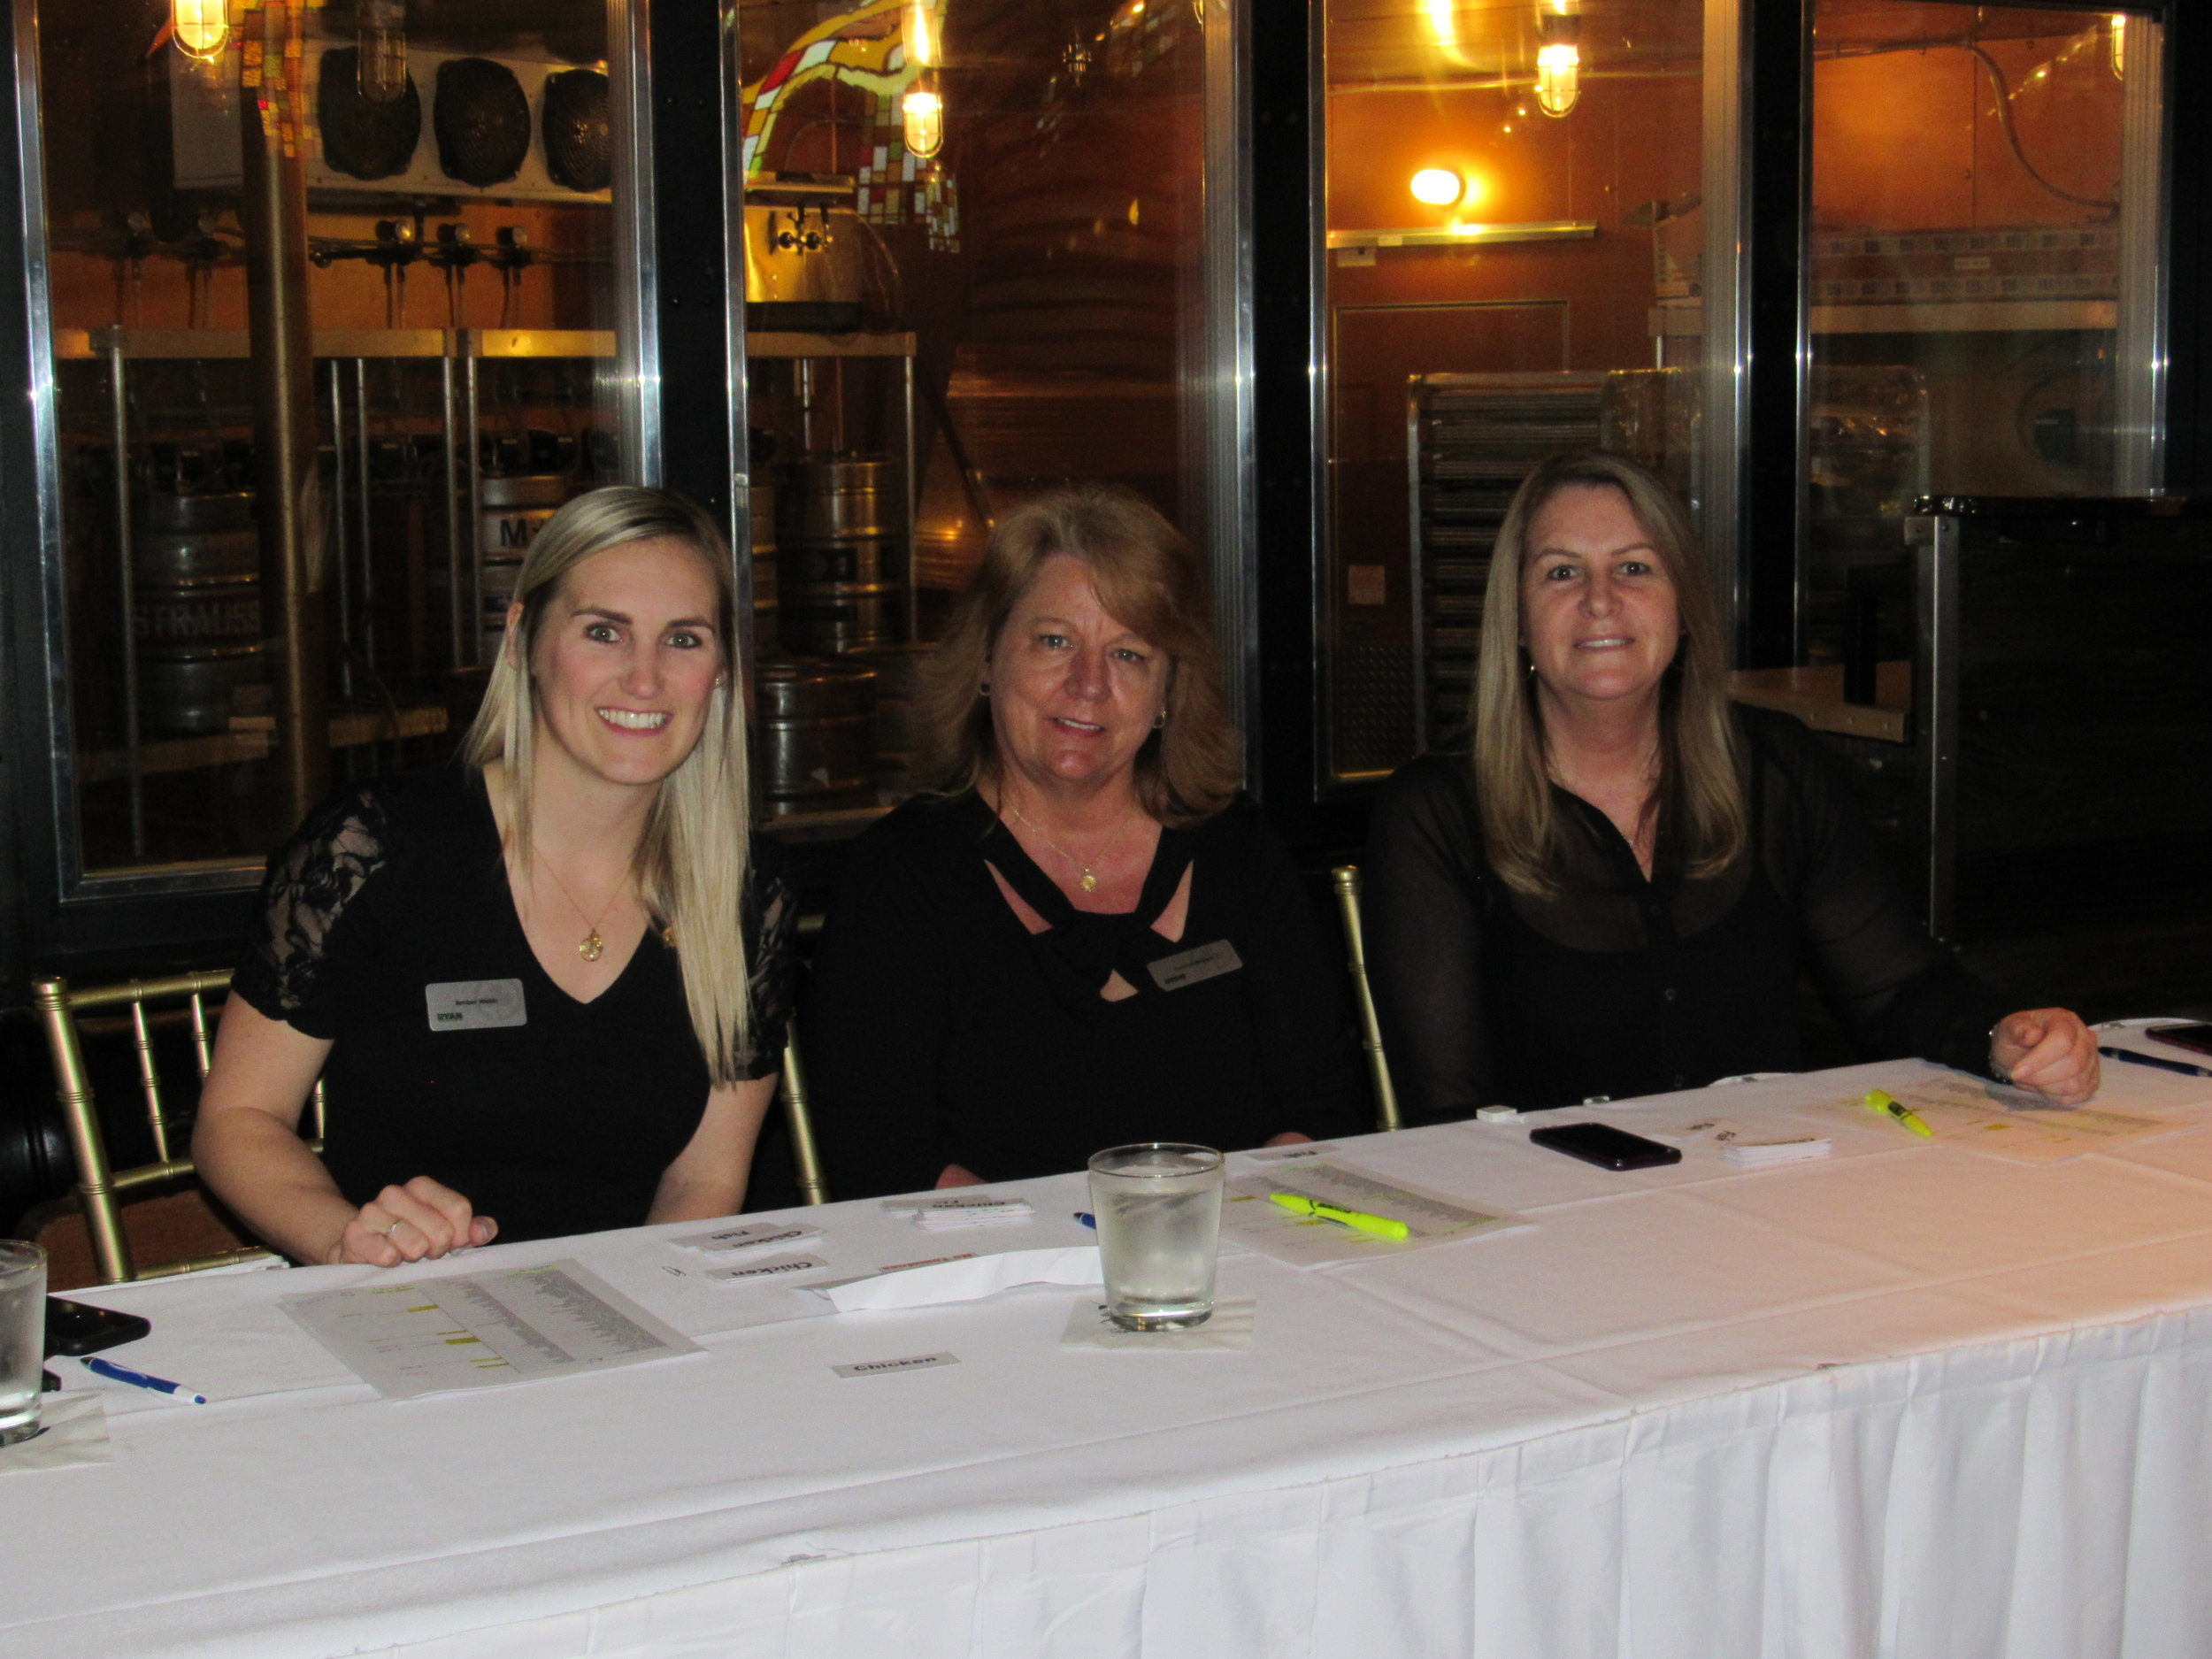 Amber Webb and two ladies sitting at registration table